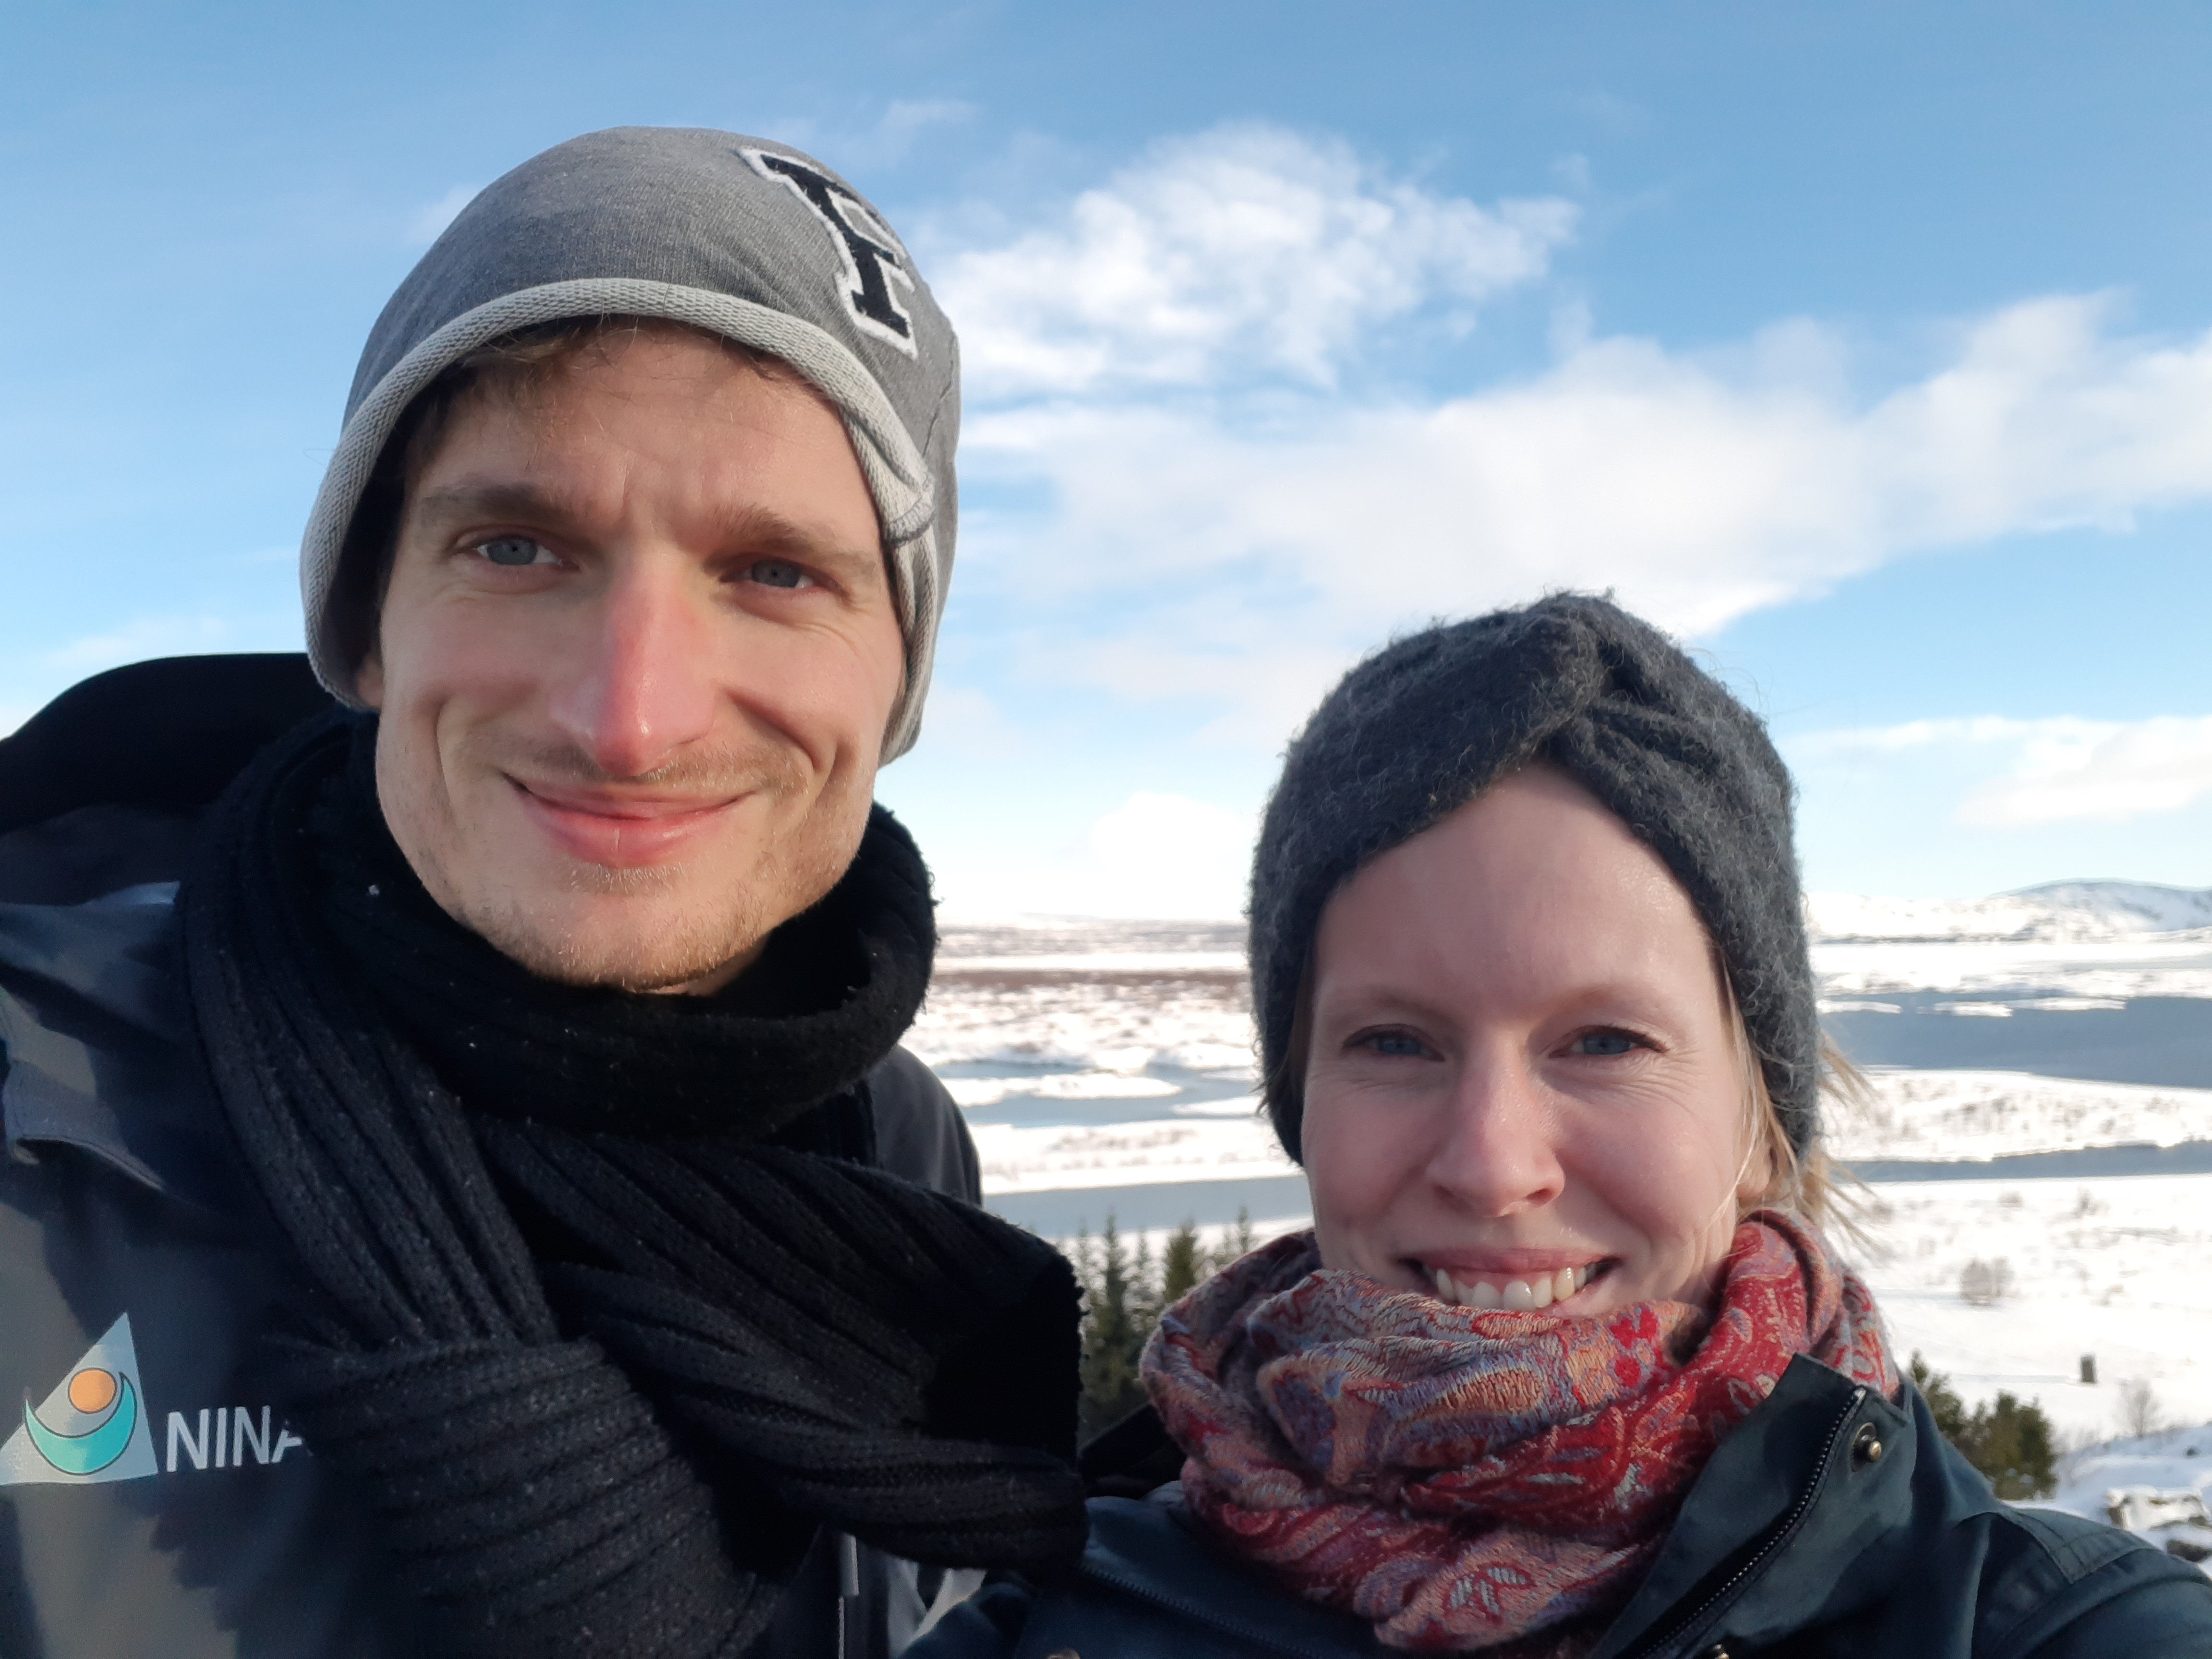 Astrid Raunsgard and Yann Czorlich, NINA, at Lake þingvallavatn, the largest natural lake in Iceland.